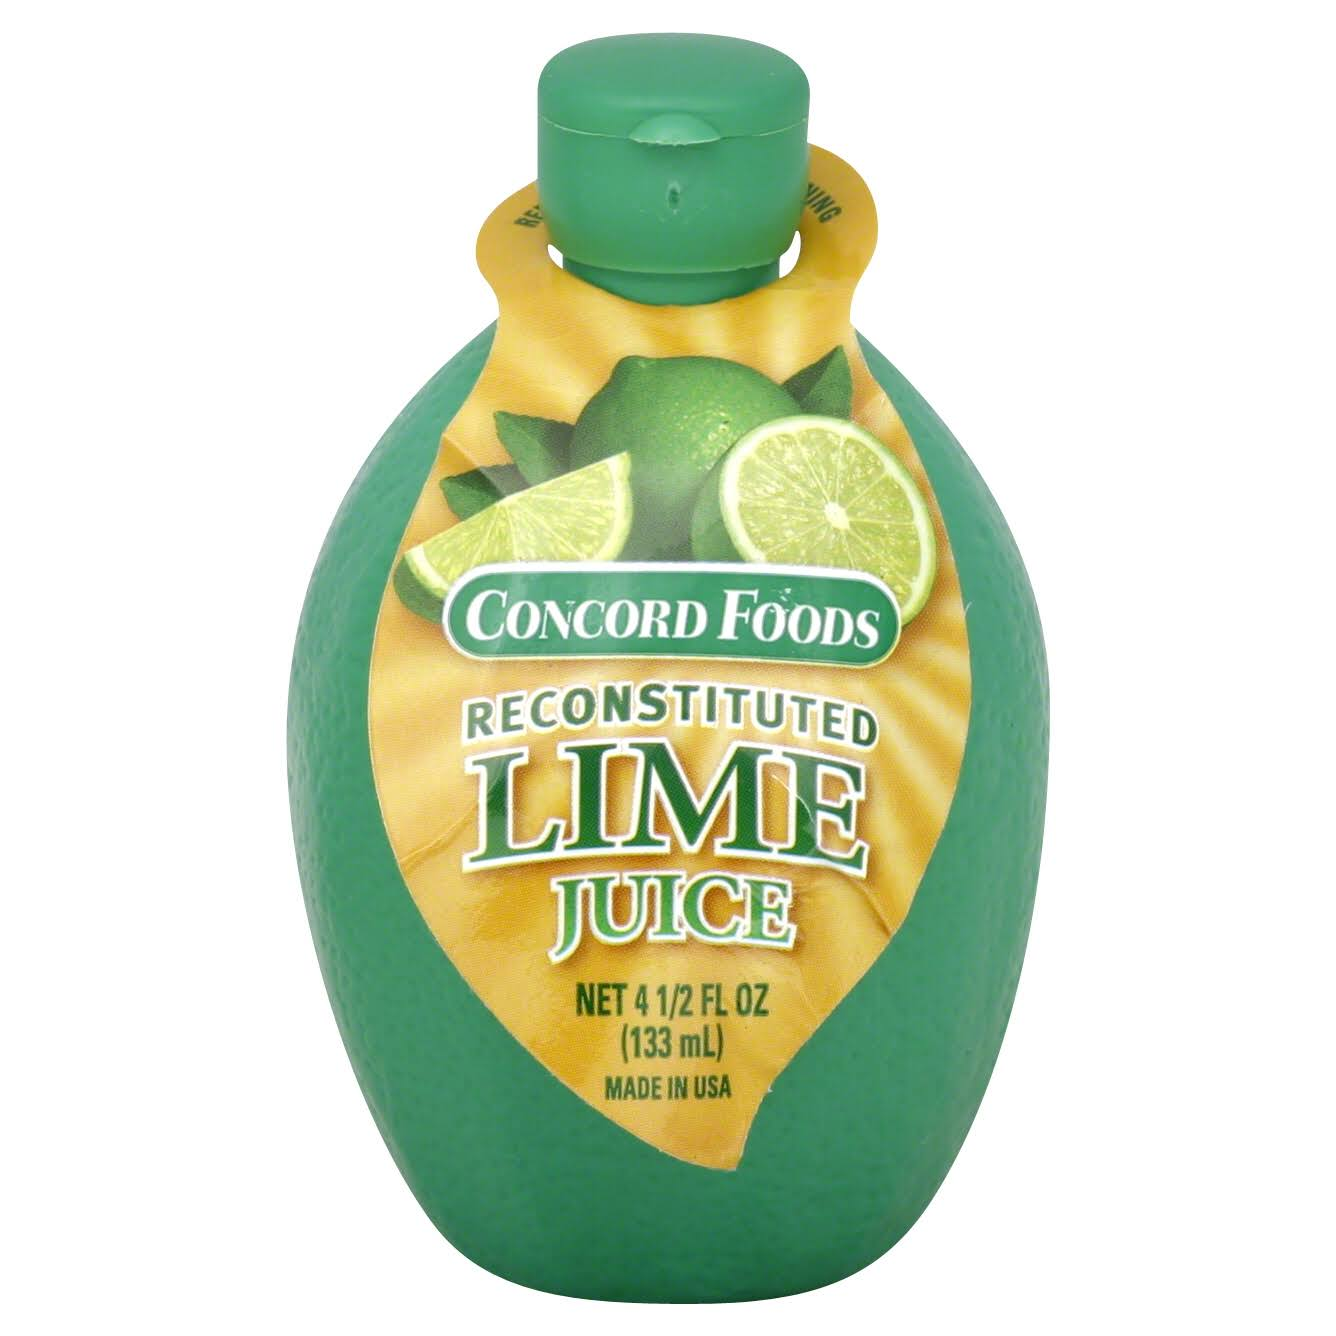 Concord Foods Reconstituted Lime Juice